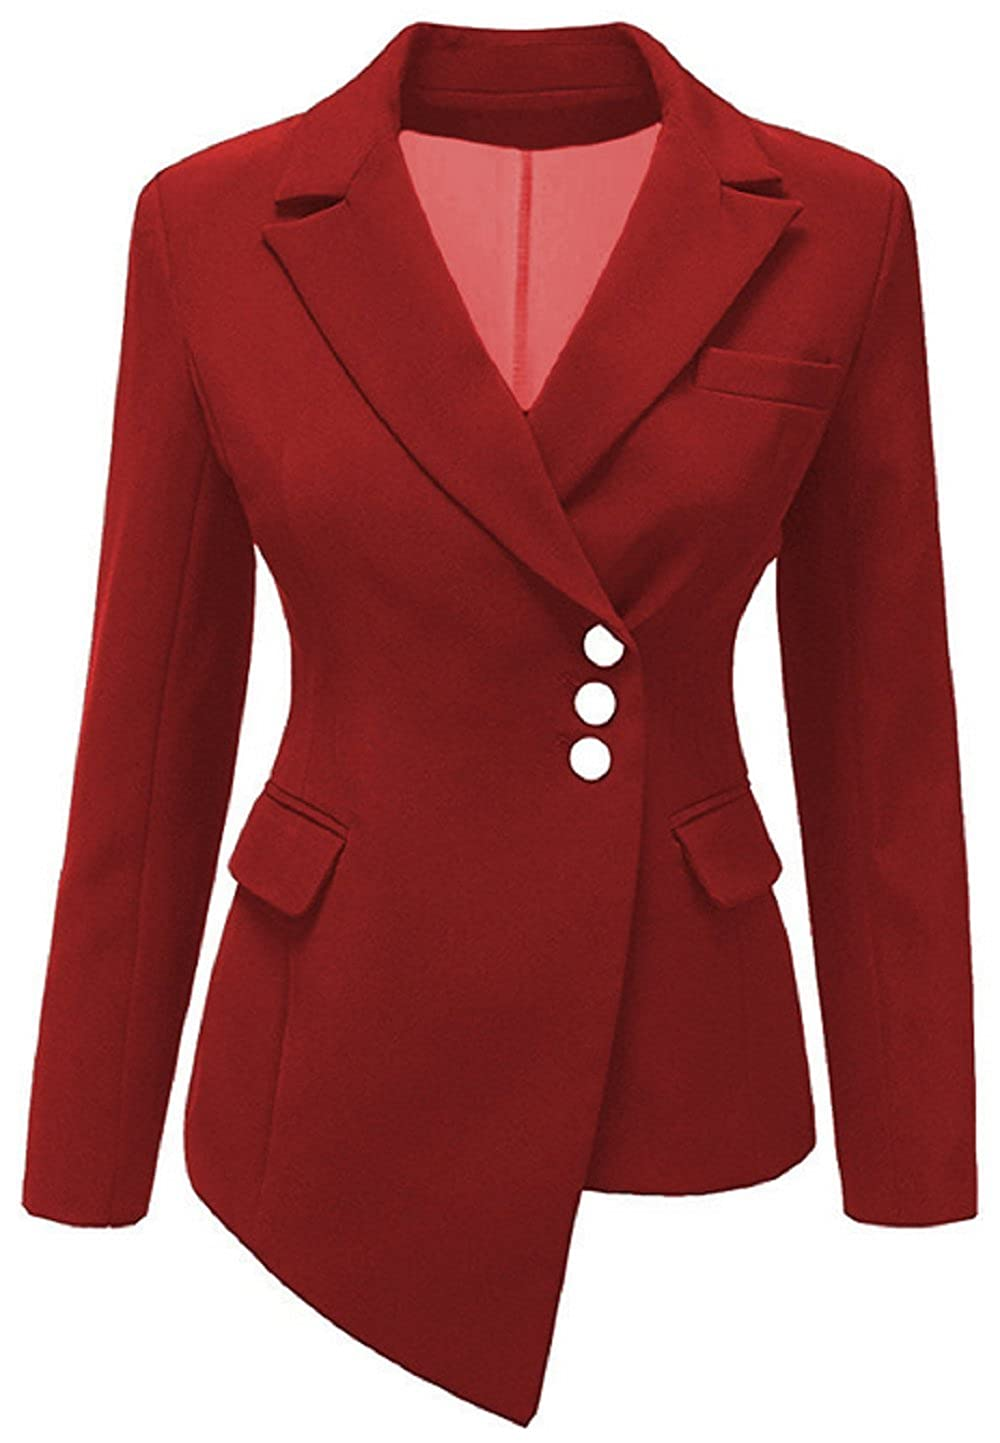 AGOGO 2018 Spring Autumn Ladies Womens Slim Fit Long Sleeve Tailored Plain Peplum Frill Crop Blazer Women's Slim Fit Jacket Casual Business Work Formal Evening Coat Top New